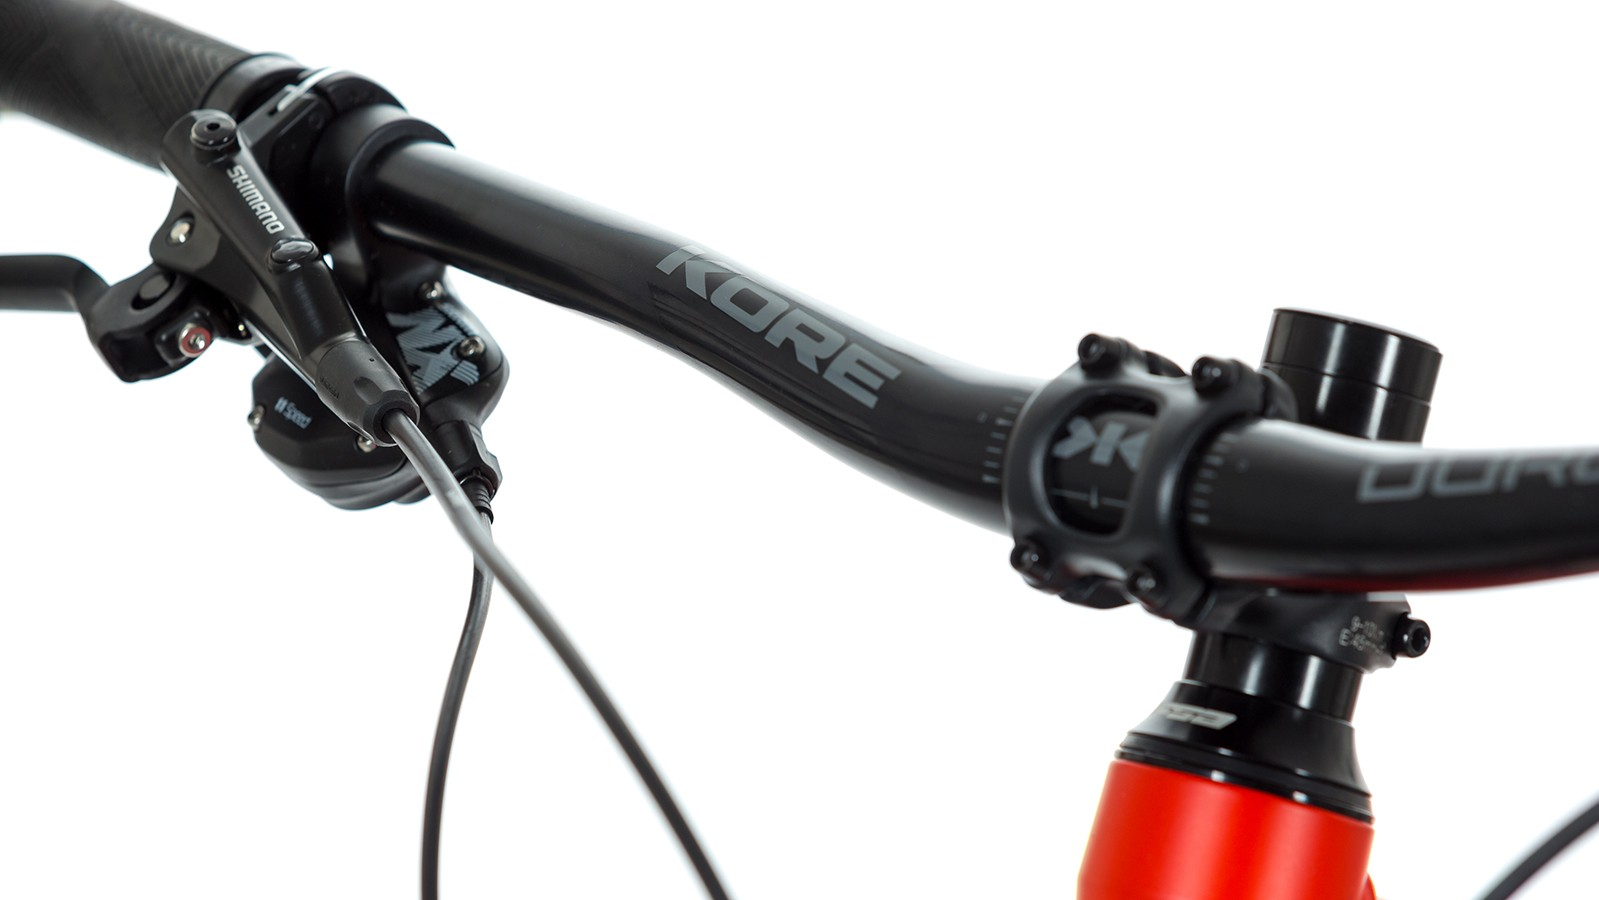 Short 45mm stem and wide 780mm bars